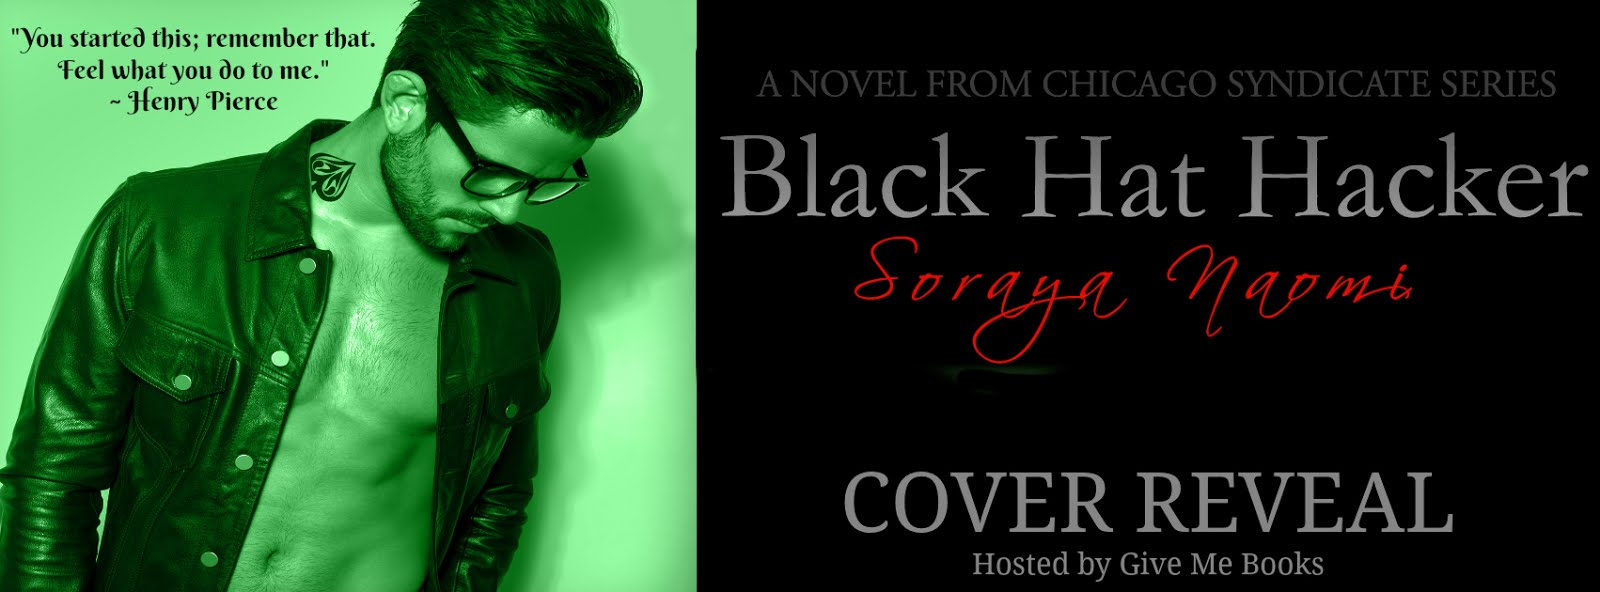 Black Hat Hacker Cover Reveal